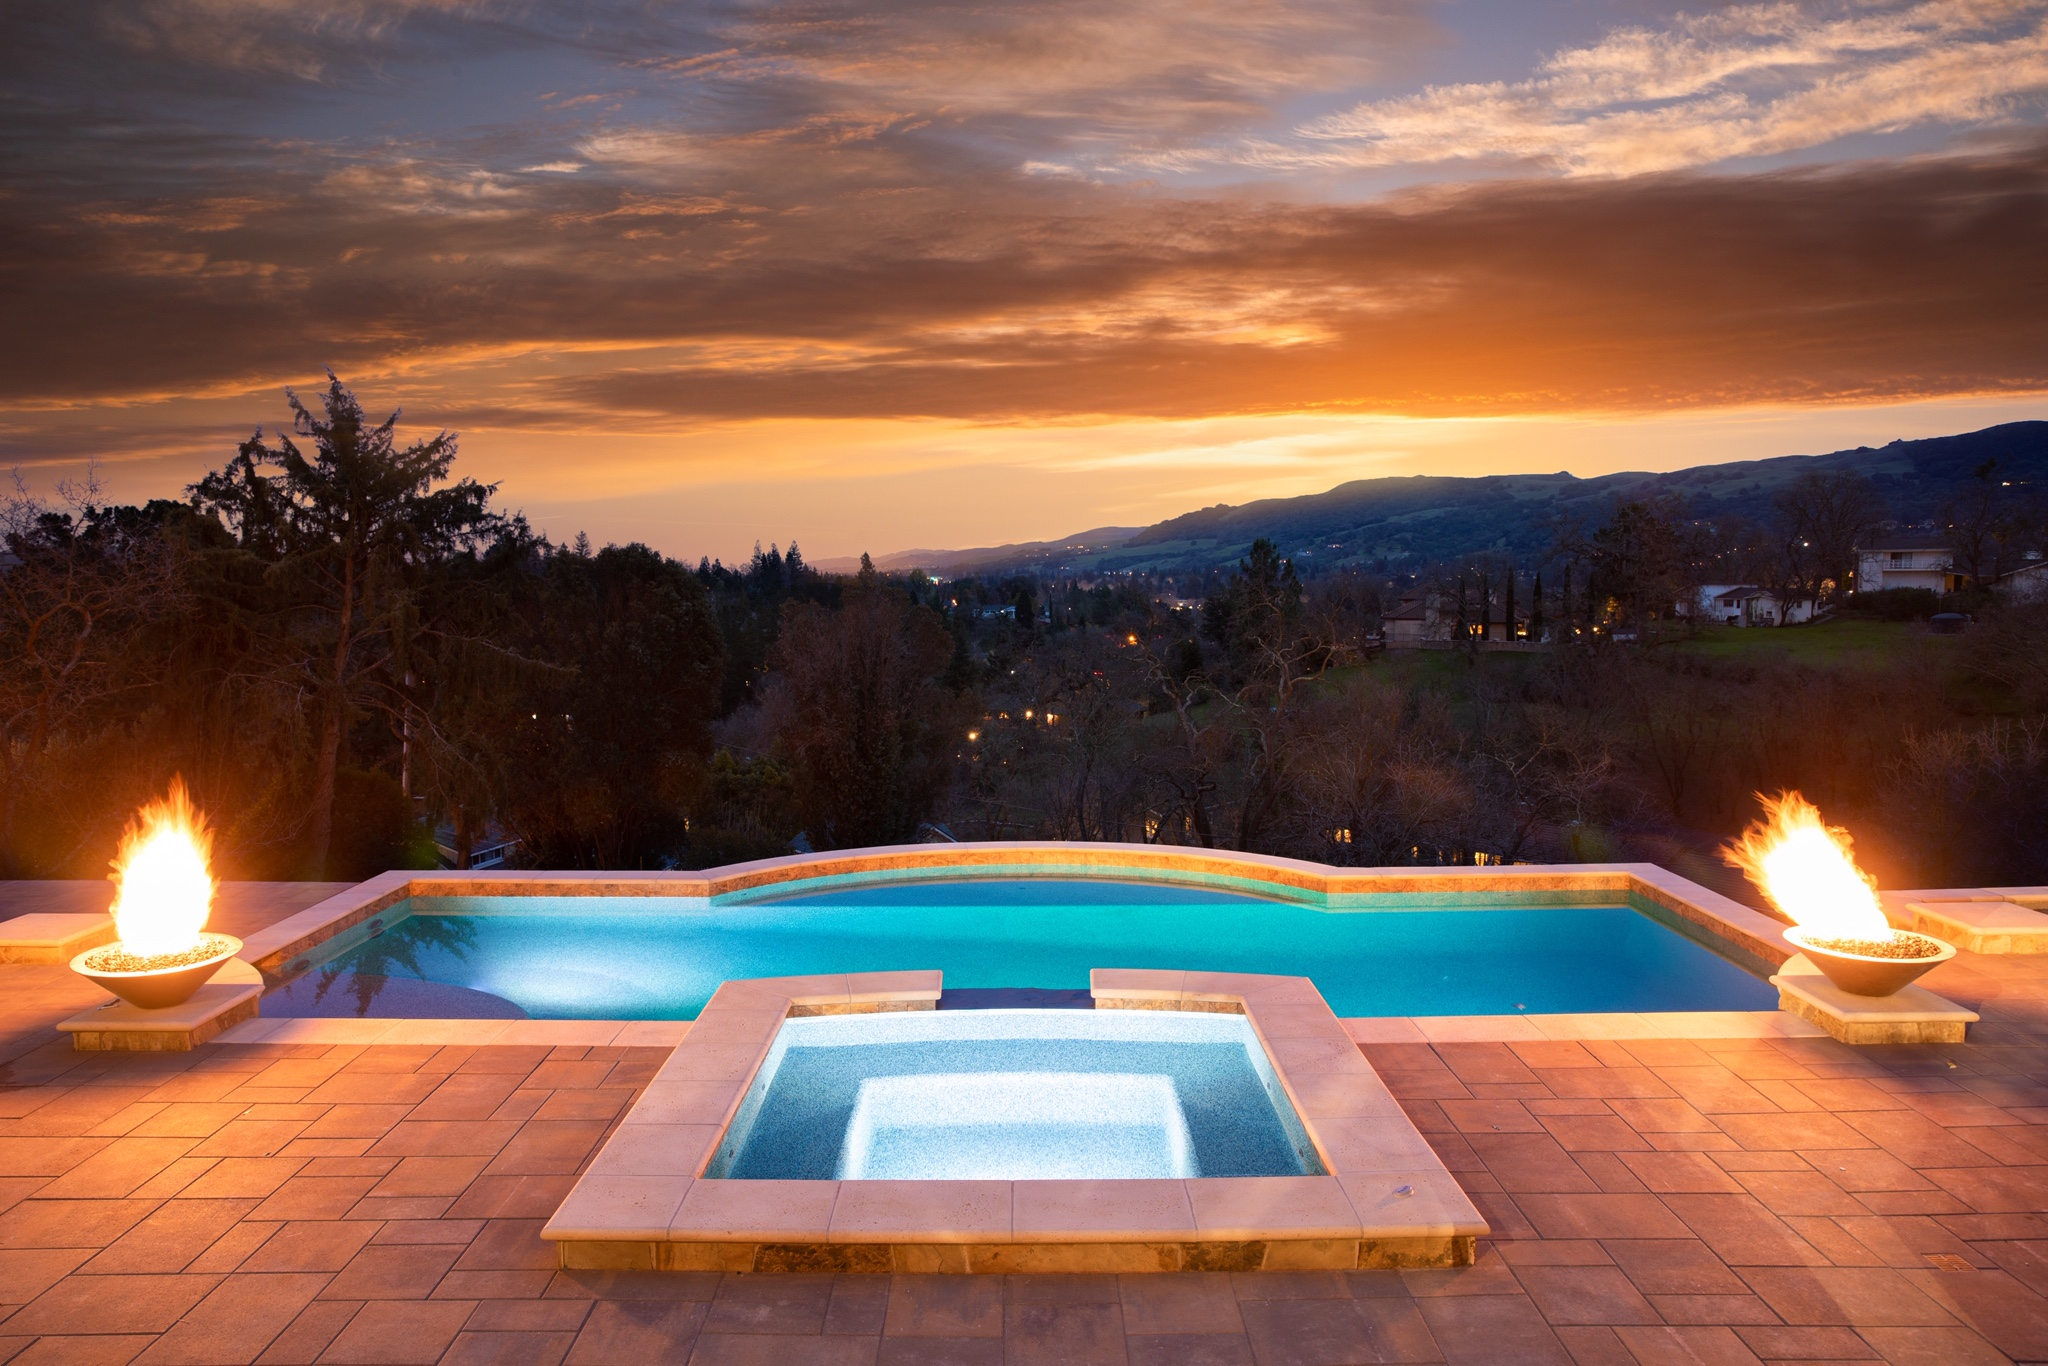 Quality swimming pool design and construction